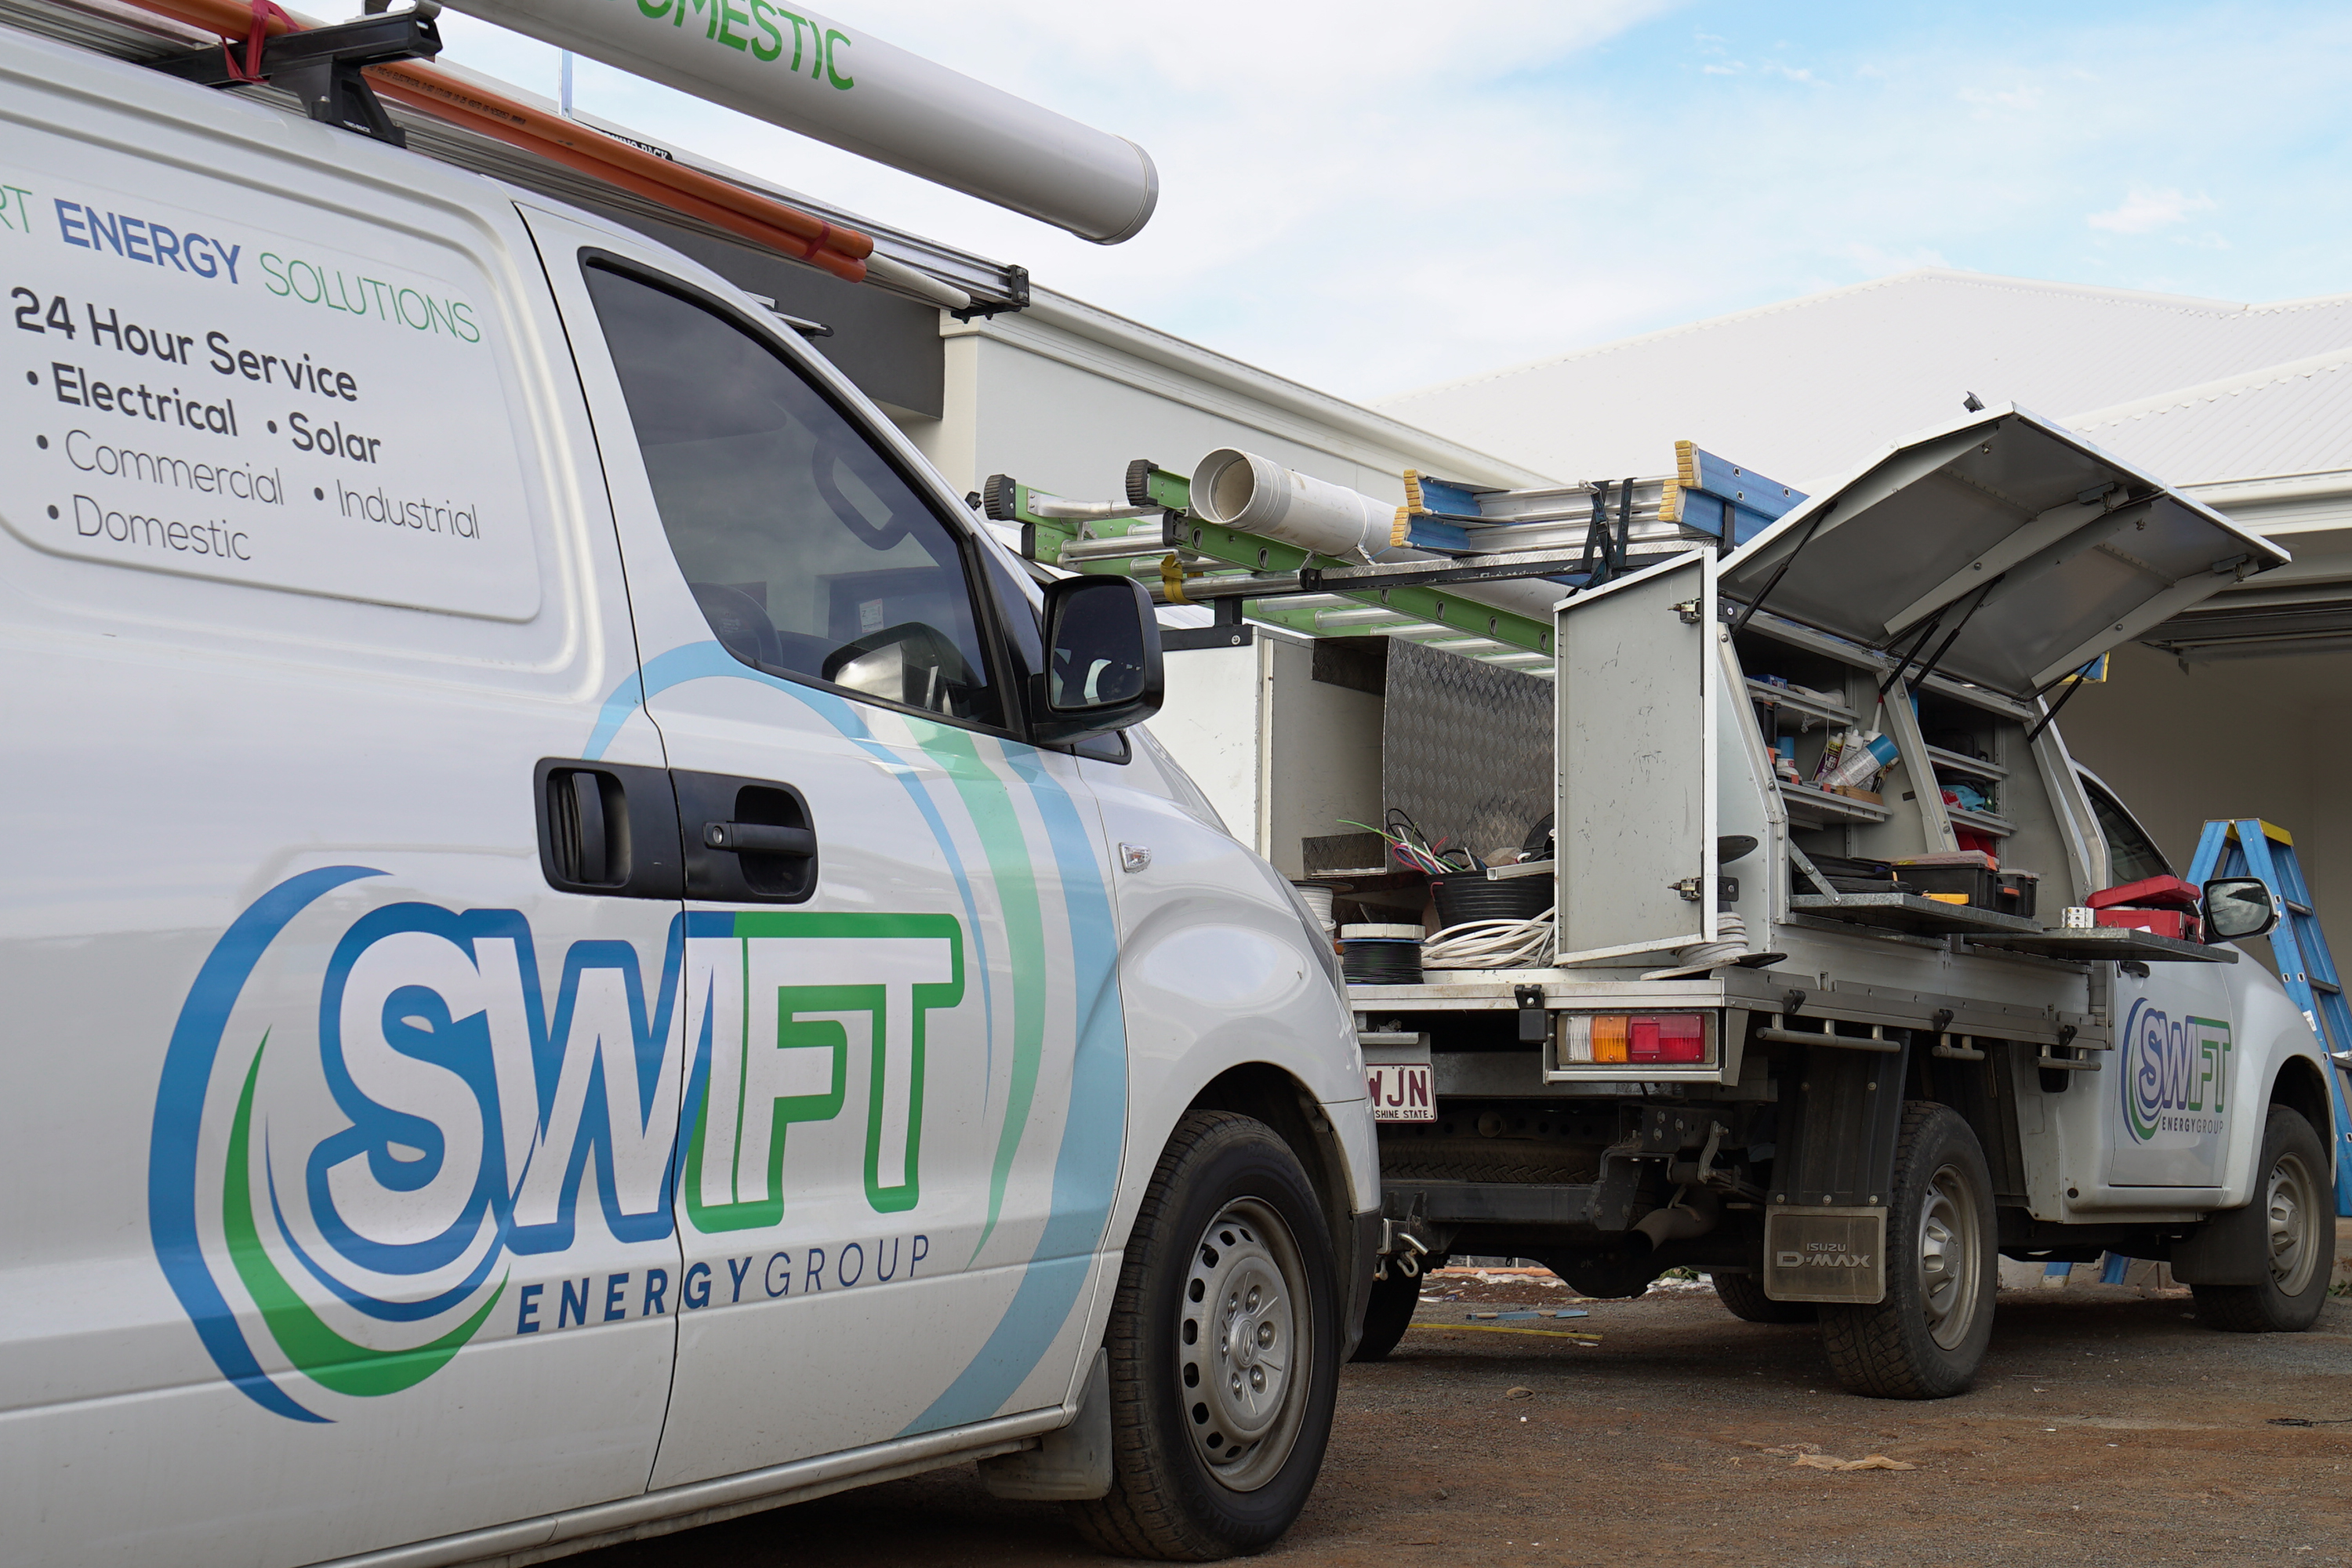 Swift Energy Group - Domestic